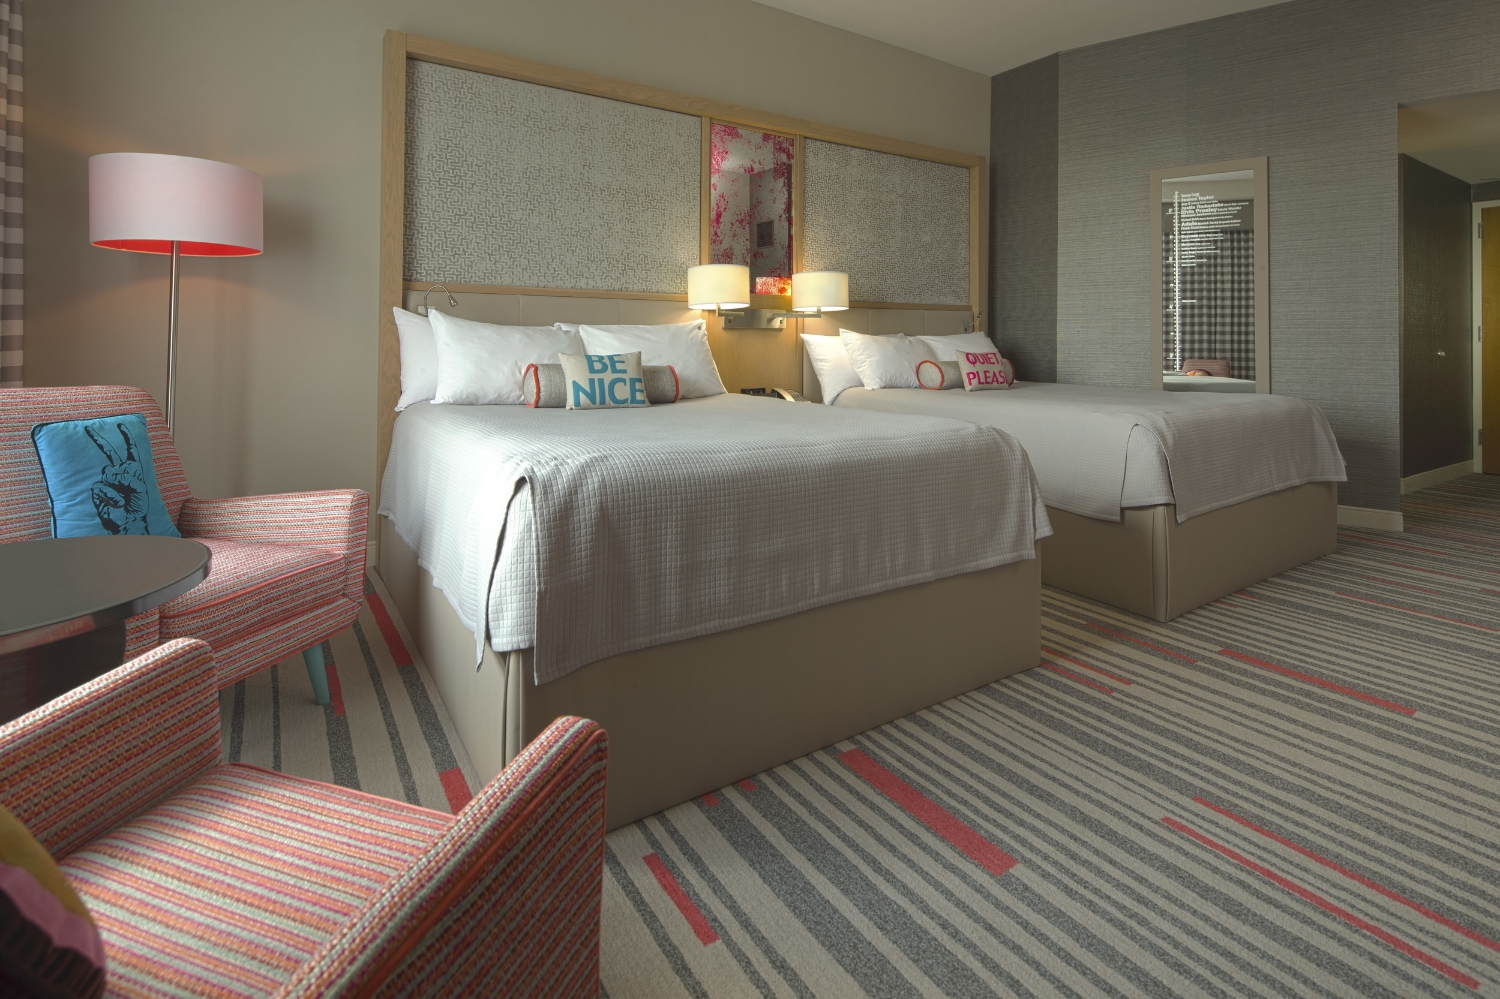 Hard Rock Hotel standard room. Image credit: Universal Orlando Resort.